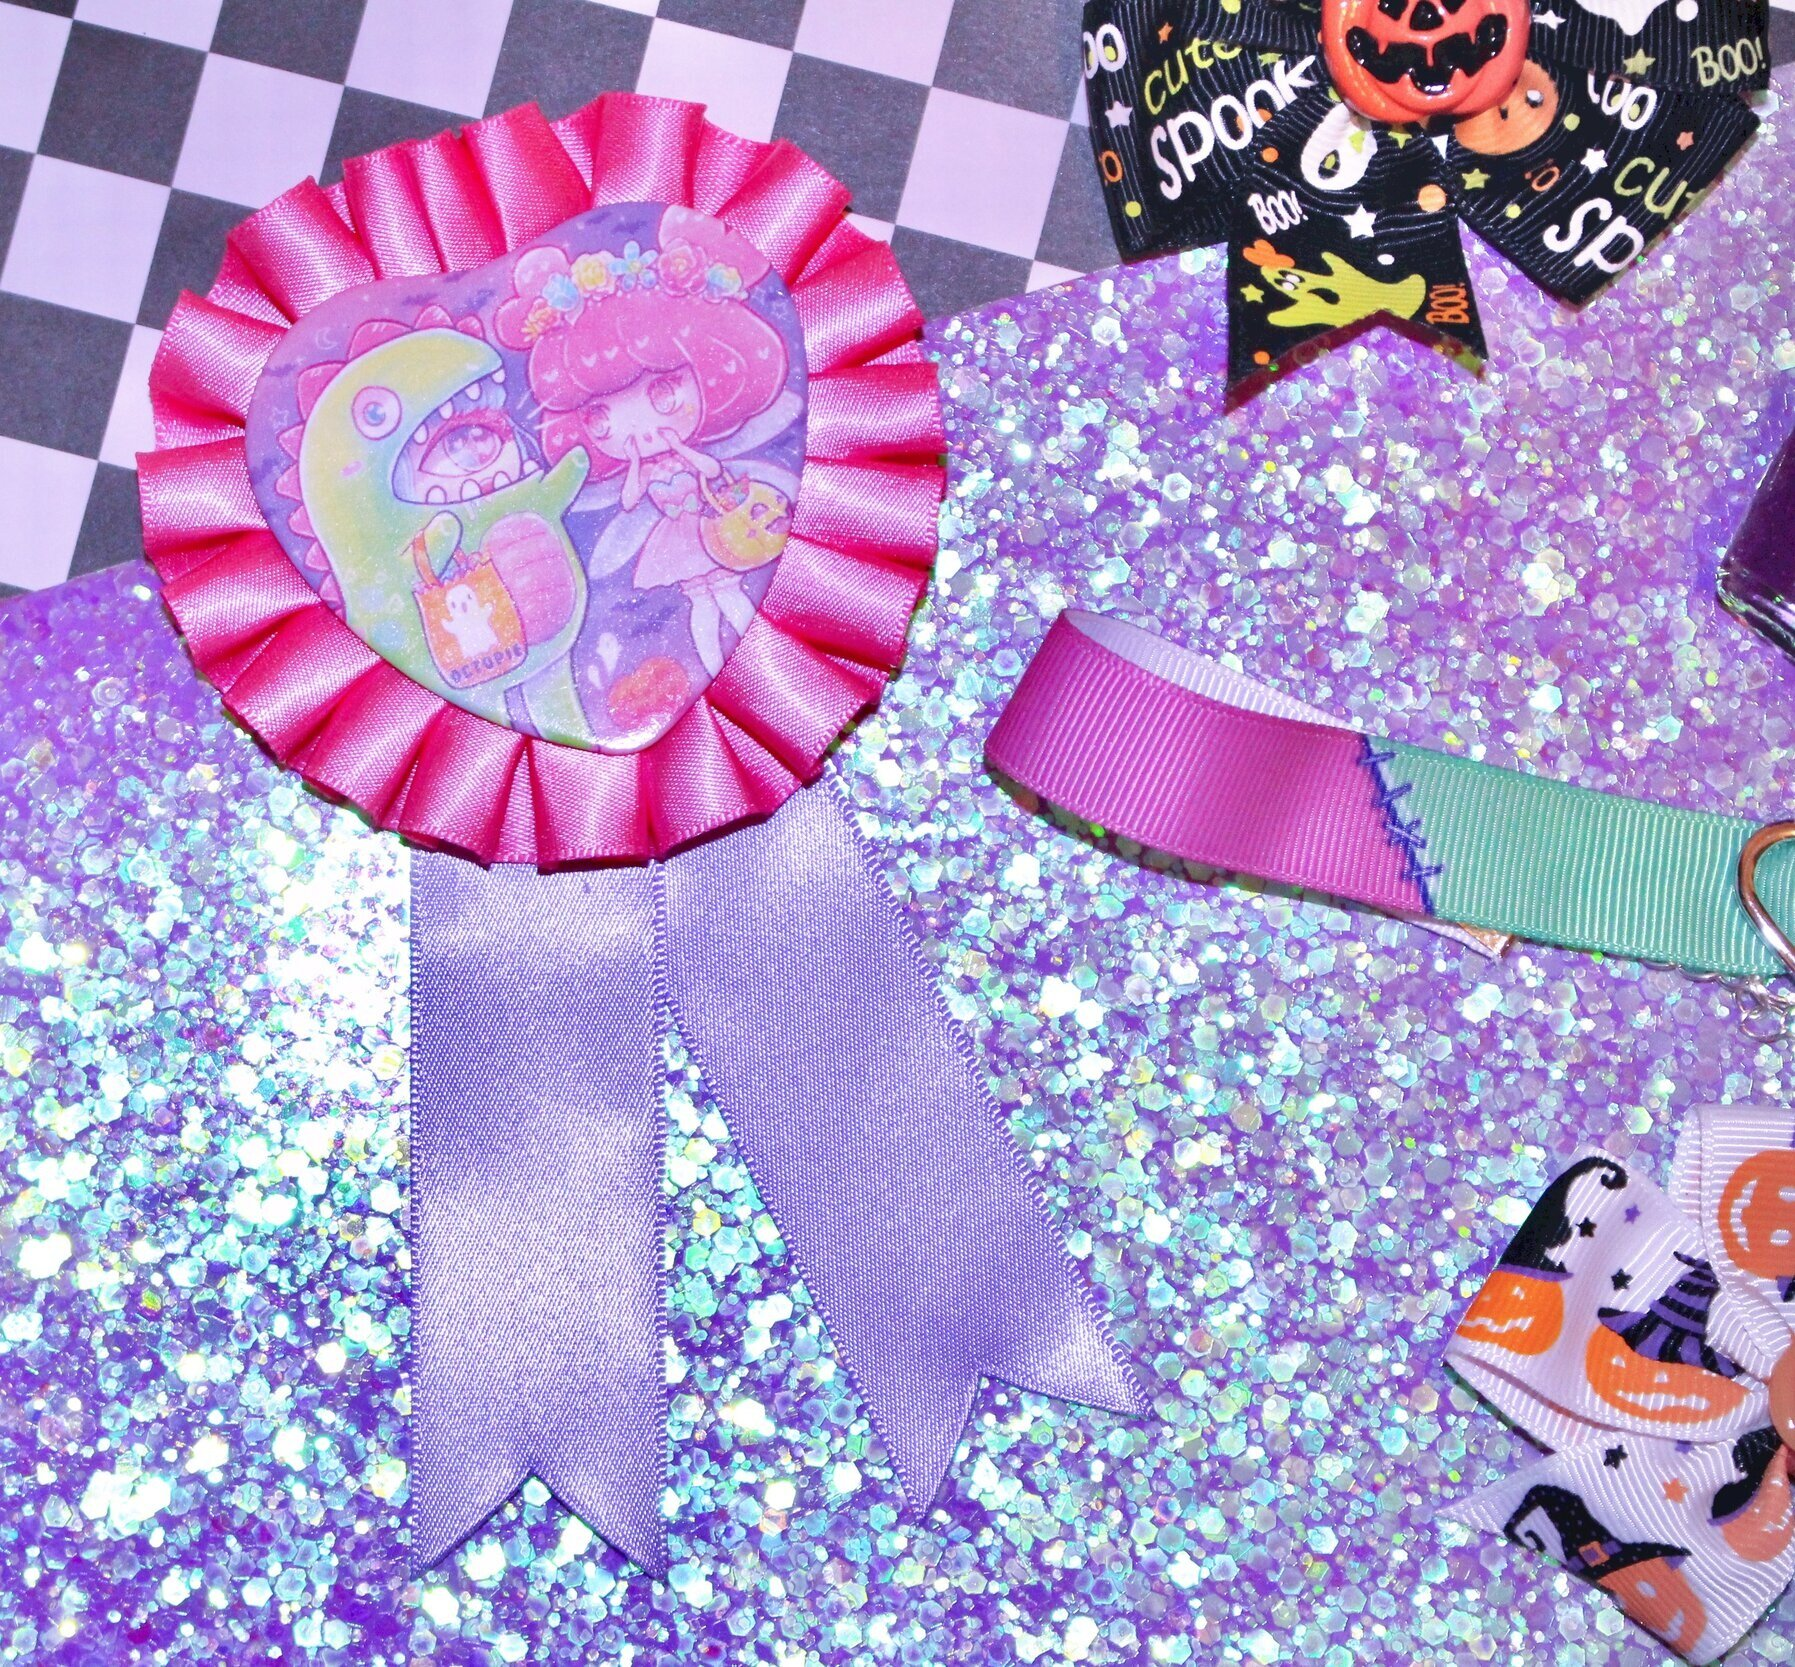 Halloween Pinback Rosette - This adorable rosette features beloved kawaii artist Miss Octopie's mascot charecters dressed up for Halloween! Pin this hot pink and lavender accessory to any outfit to add kawaii flare year round! 🍬🍭